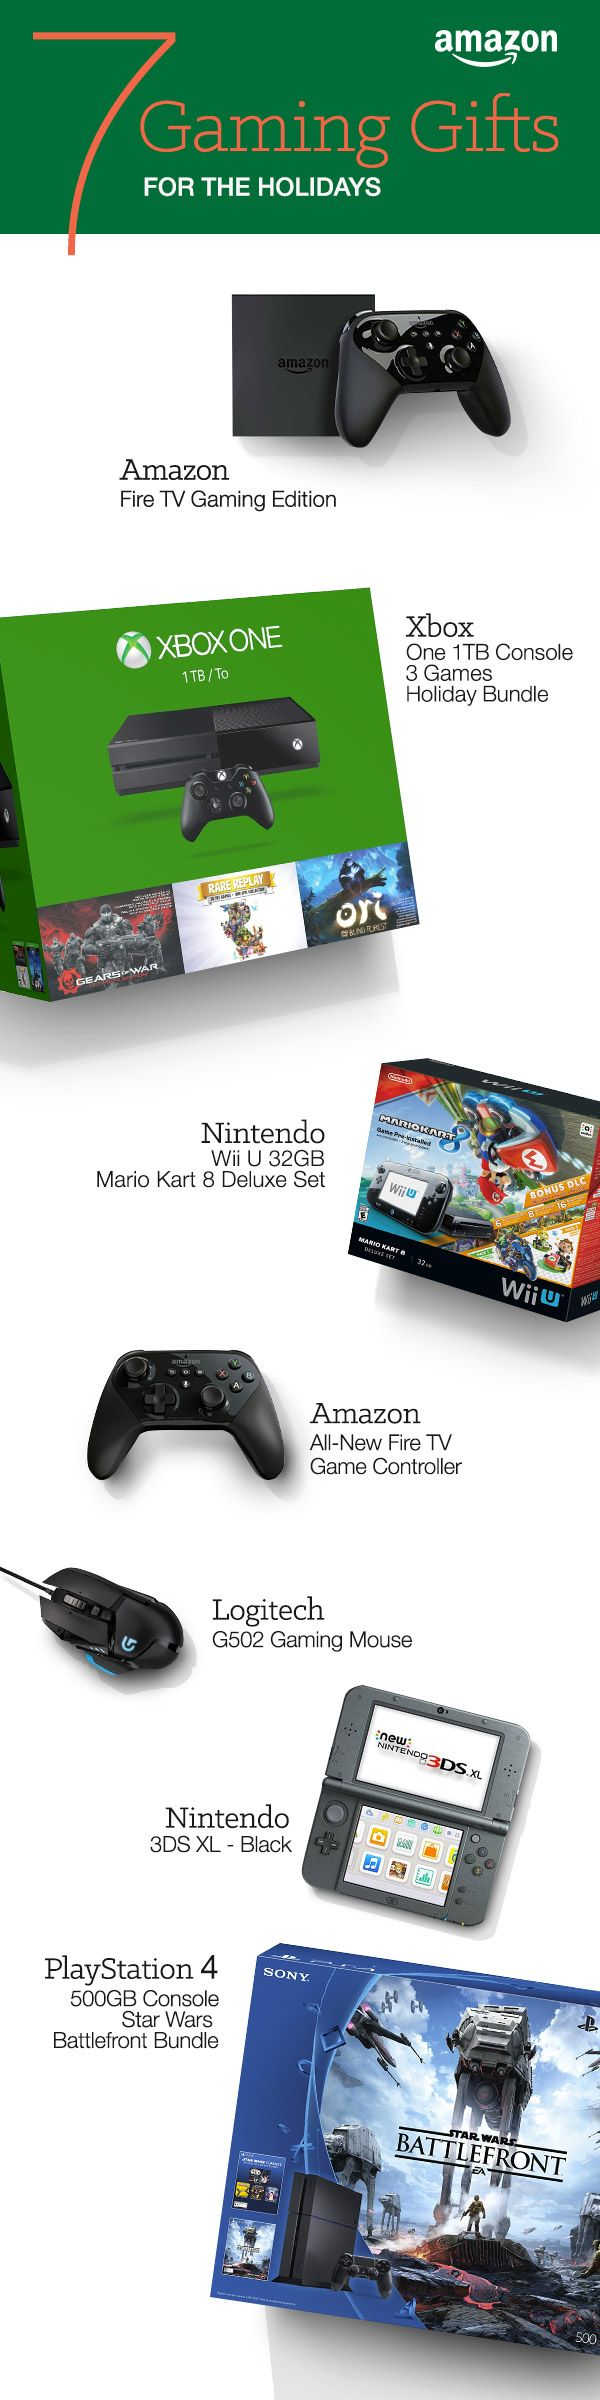 From the diehard gamer to families that play together, most wishlists have video games, consoles or accessories. We've tracked down the best deals and bundles for the Playstation 4, Xbox One, and Wii U. We didn't forget about PC and Steam gamers either. http://www.amazon.com/b/?_encoding=UTF8&node=7258702011&tag=tsa030-20&ascsubtag=ptw-PIN-1-9-1447387703313p8&ref_=ptw_PIN_1_9_1447387703313p8